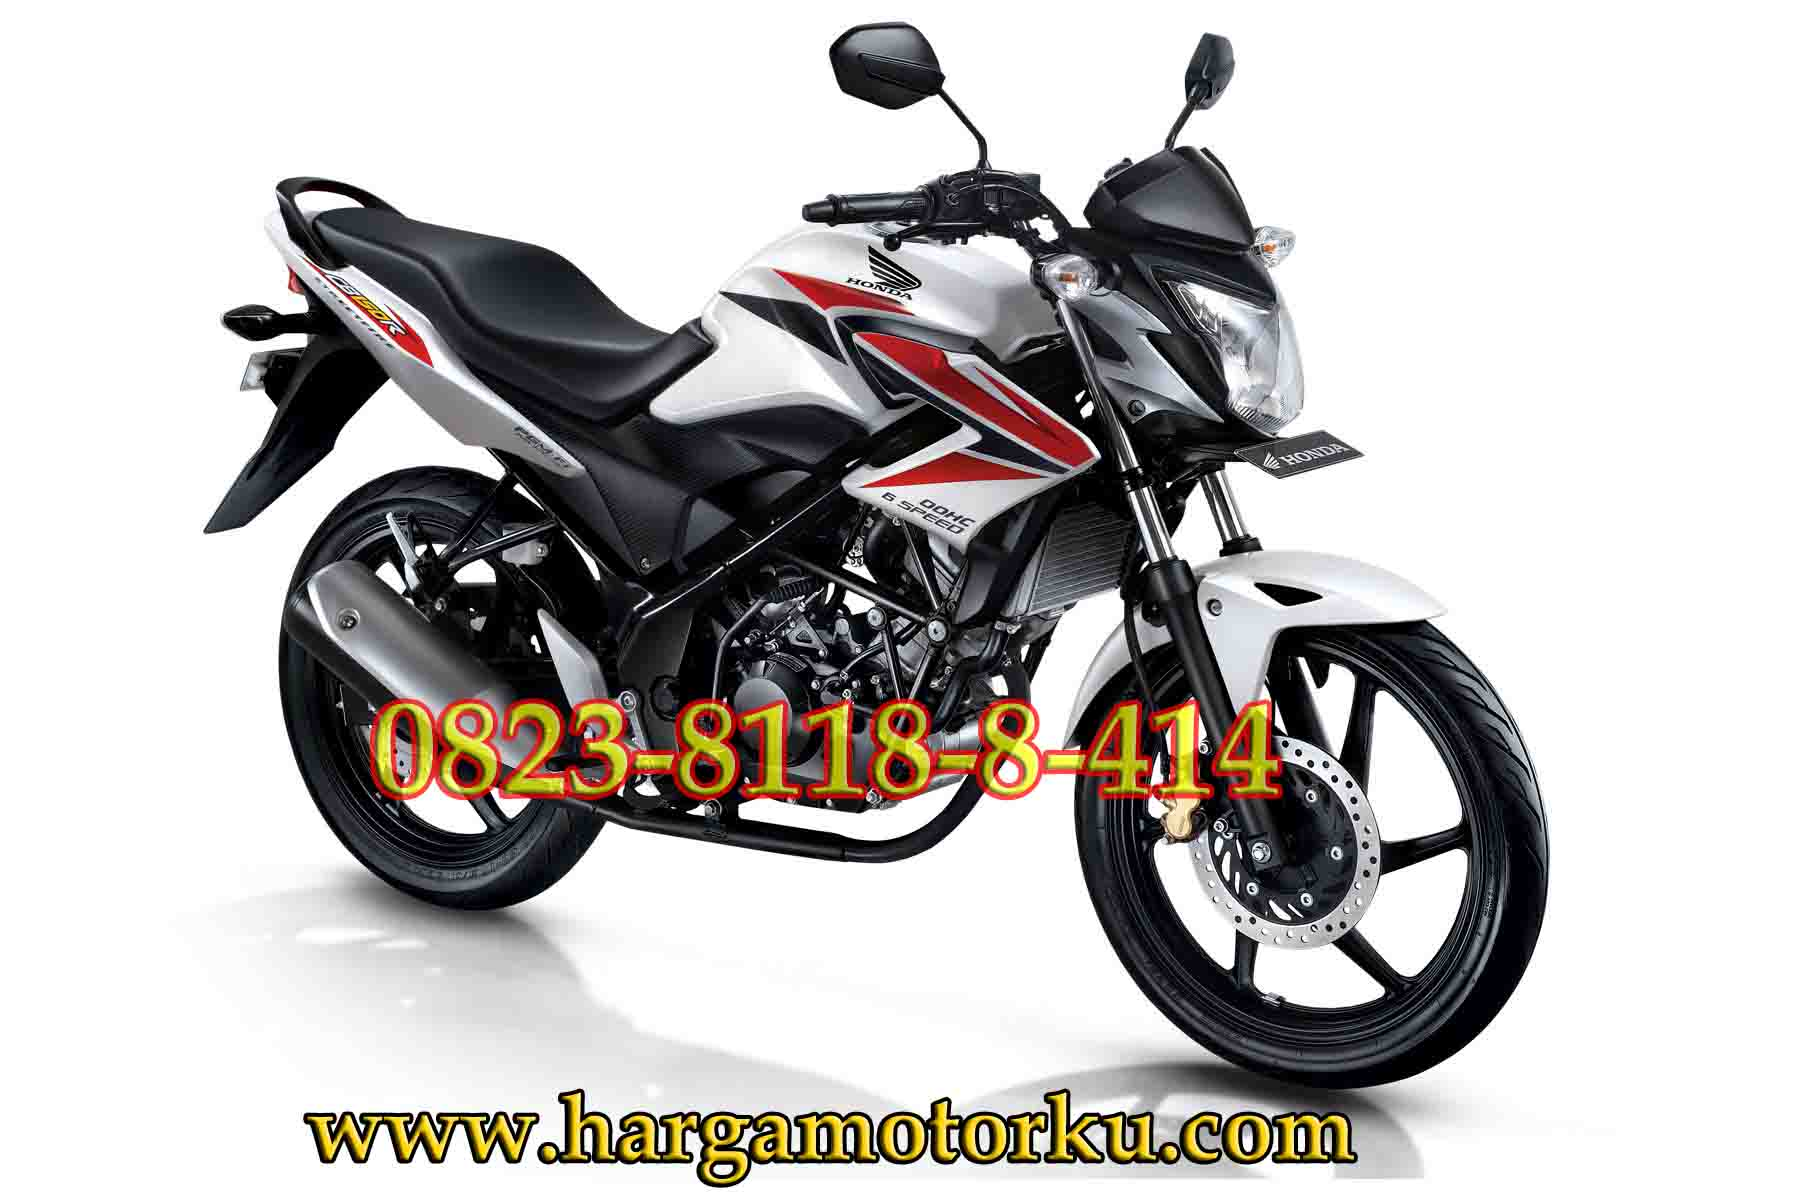 Motor Honda Spacy Helm In Cash Kredit Harga Murah ...